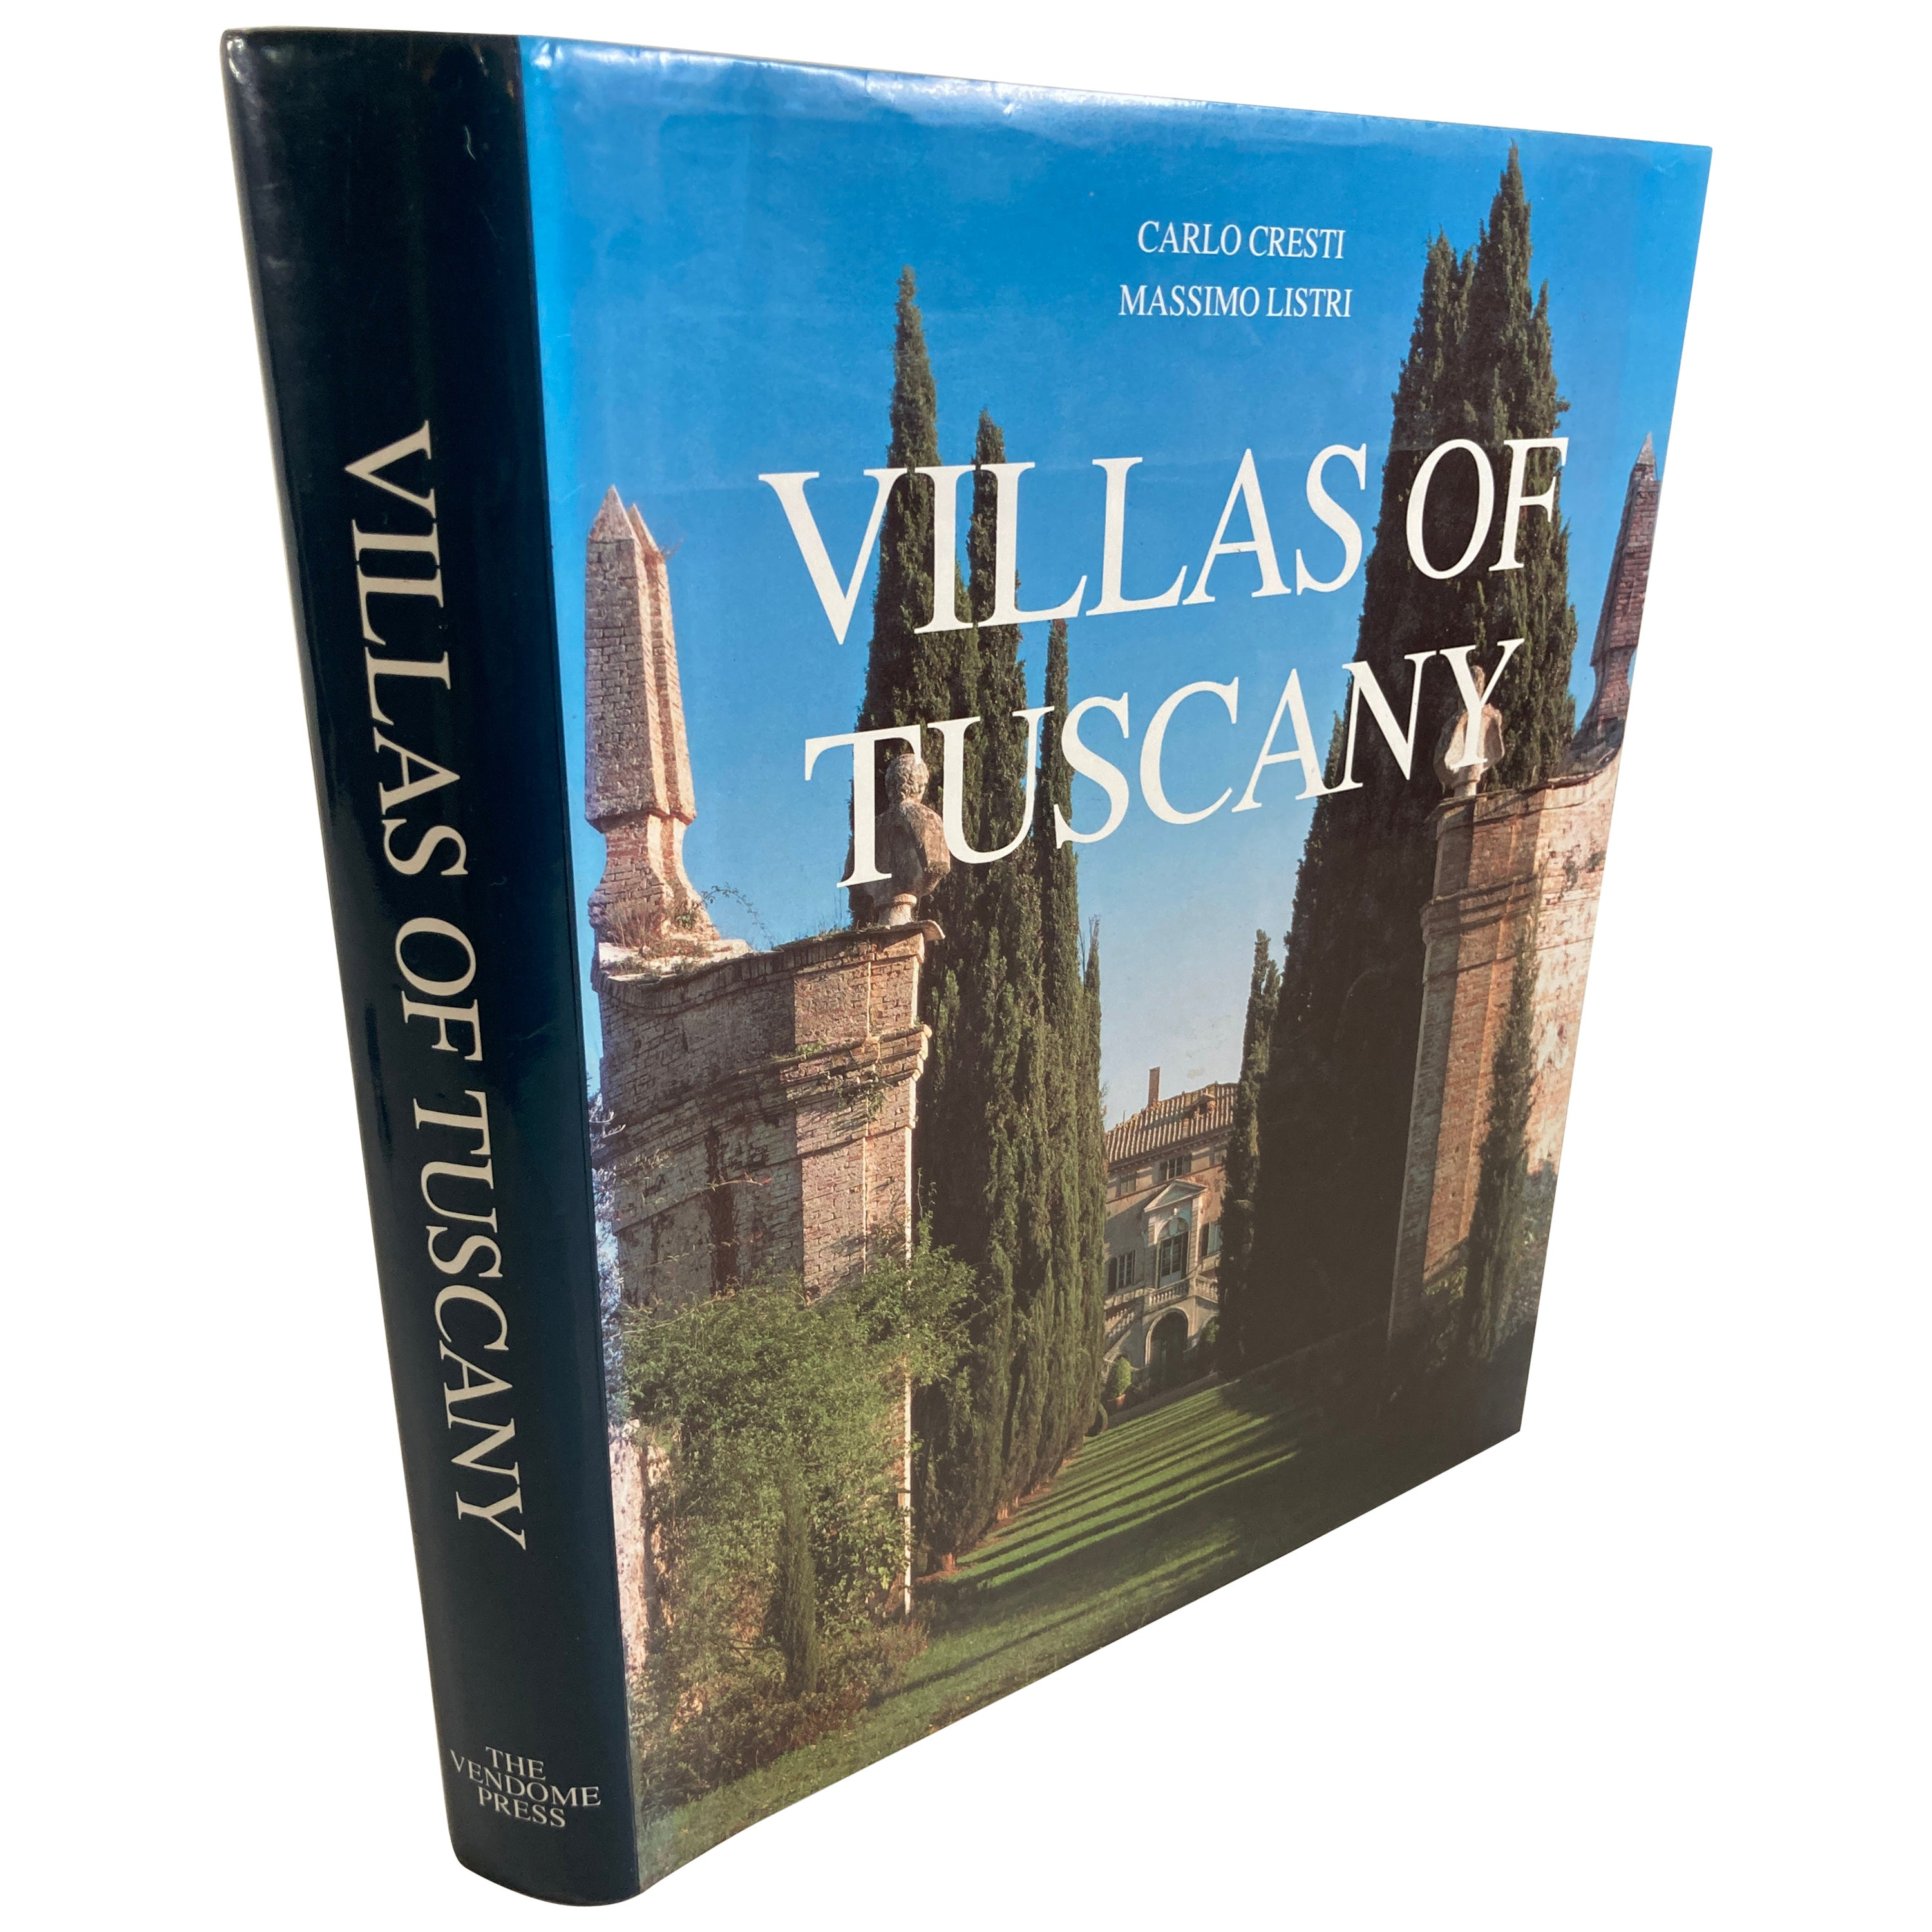 Villas of Tuscany Hardcover Hardcover Book